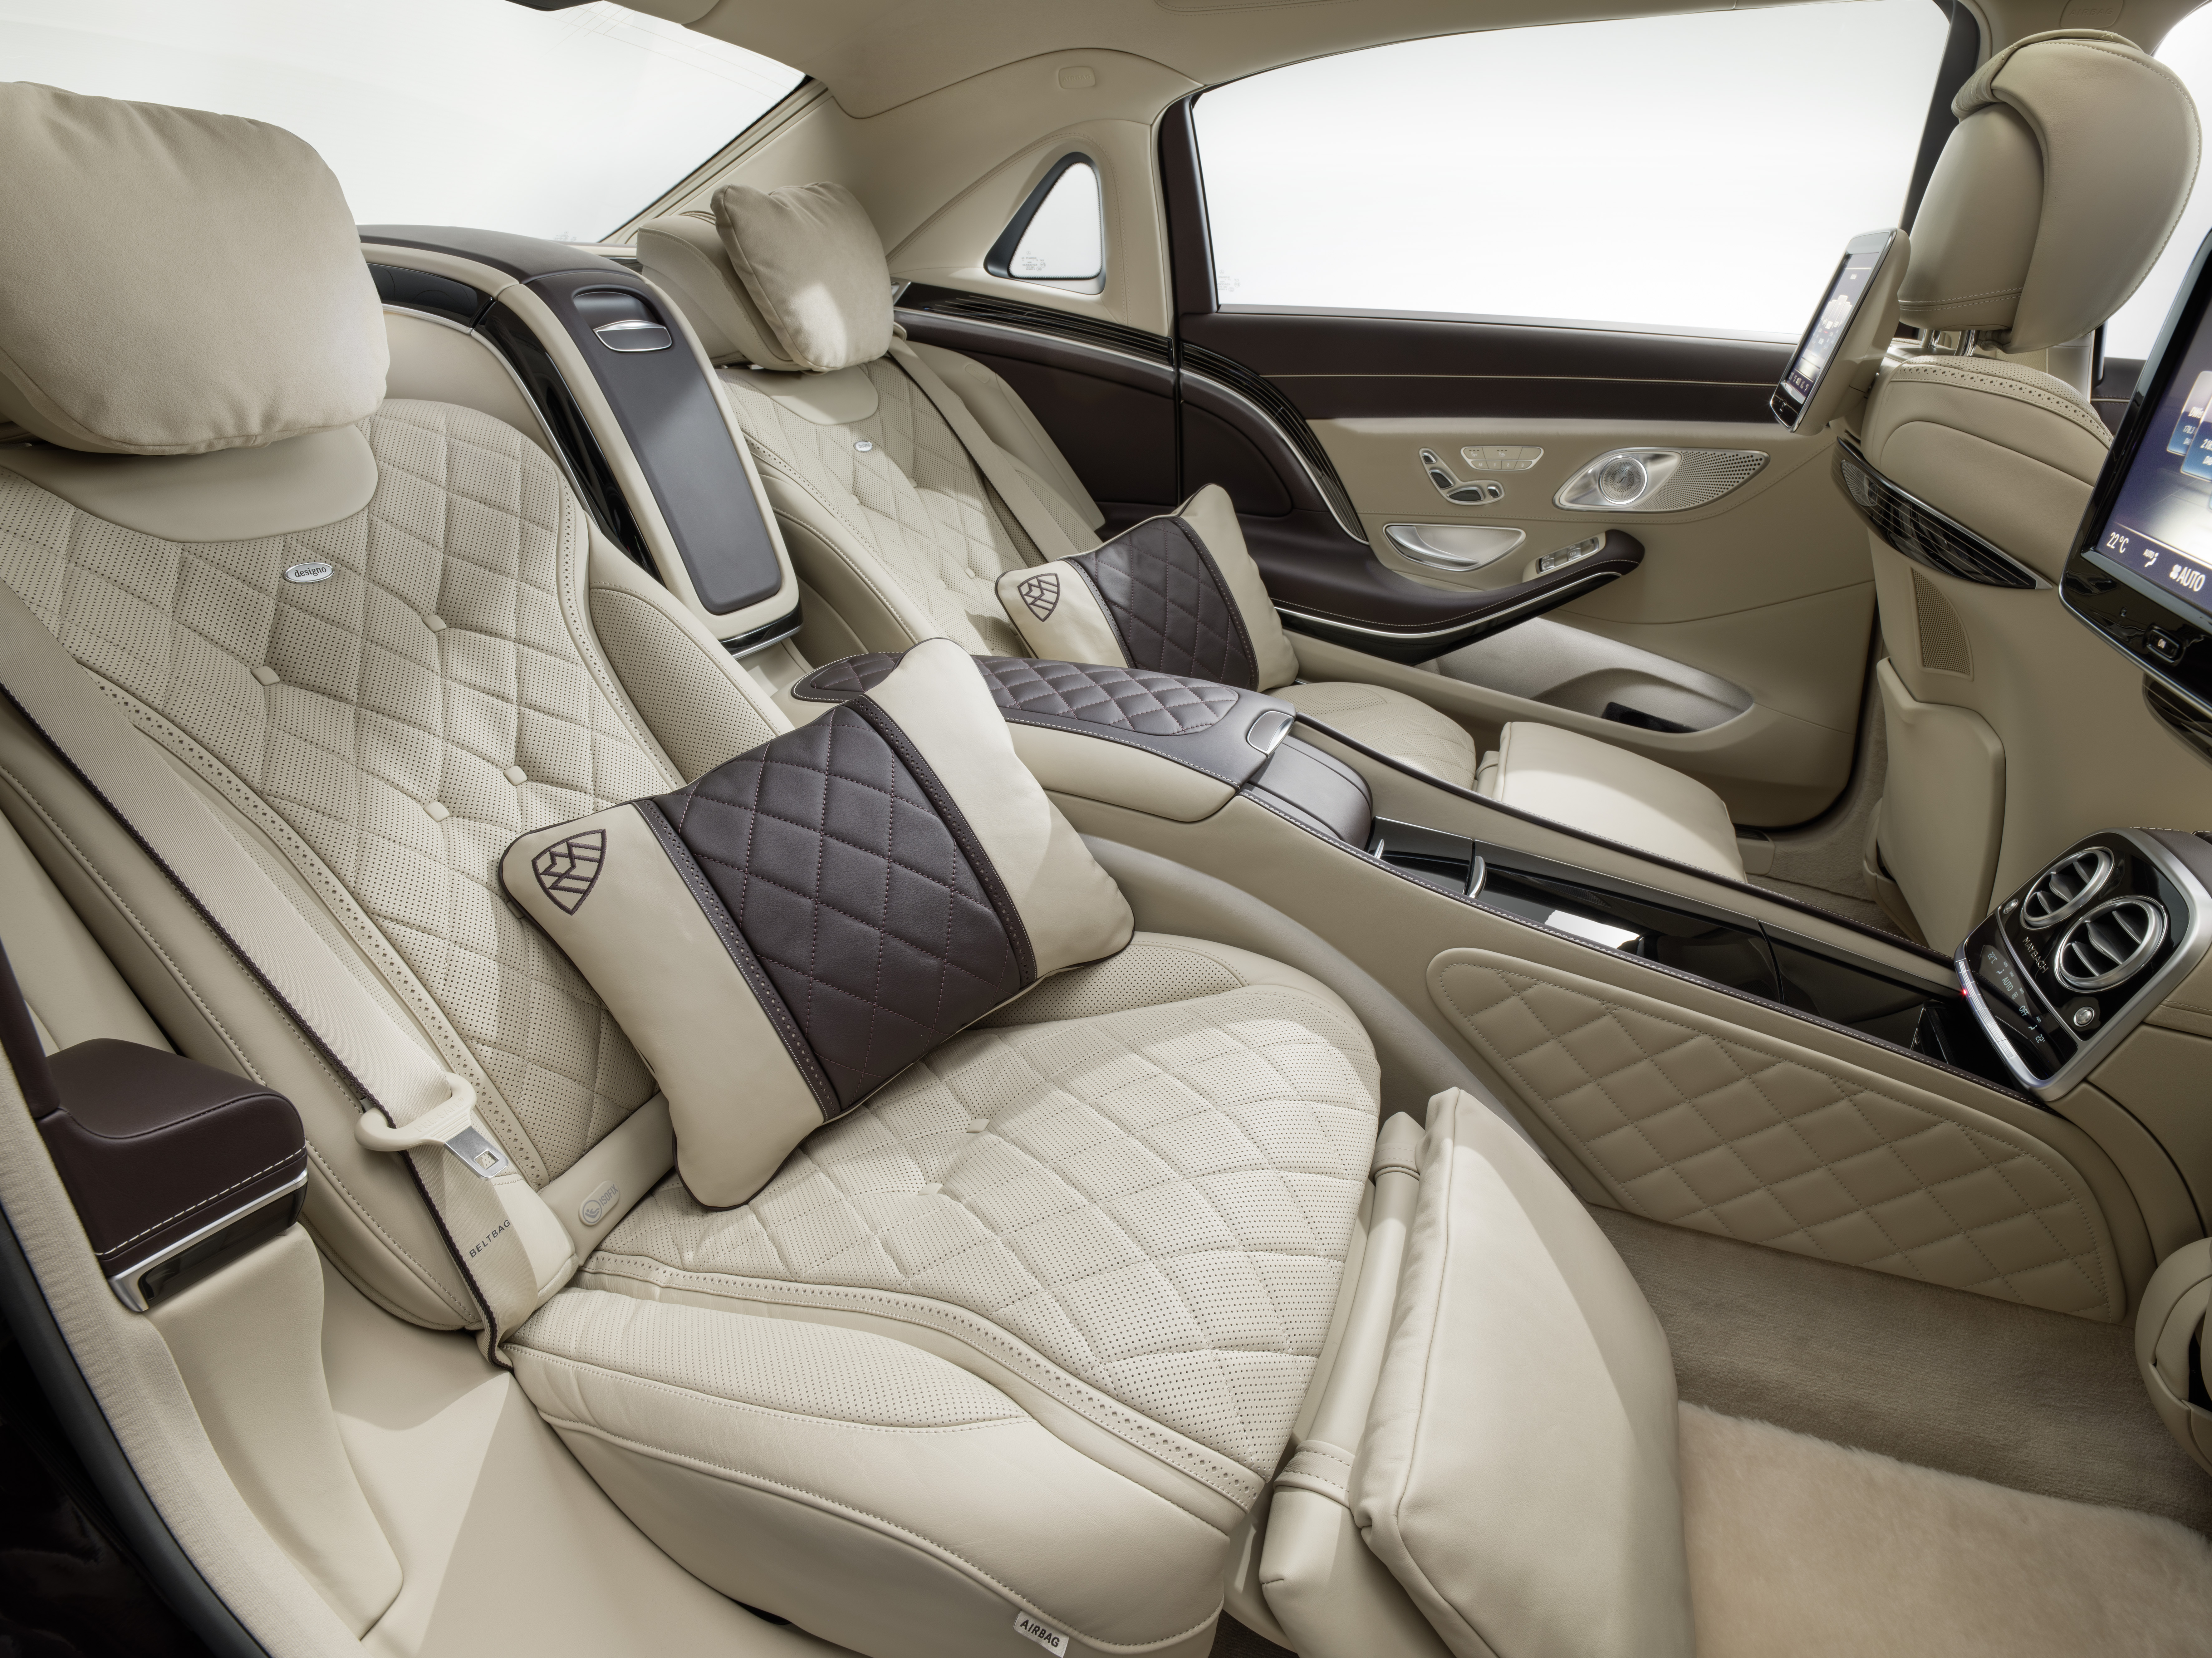 2016 Mercedes-Benz Maybach #2